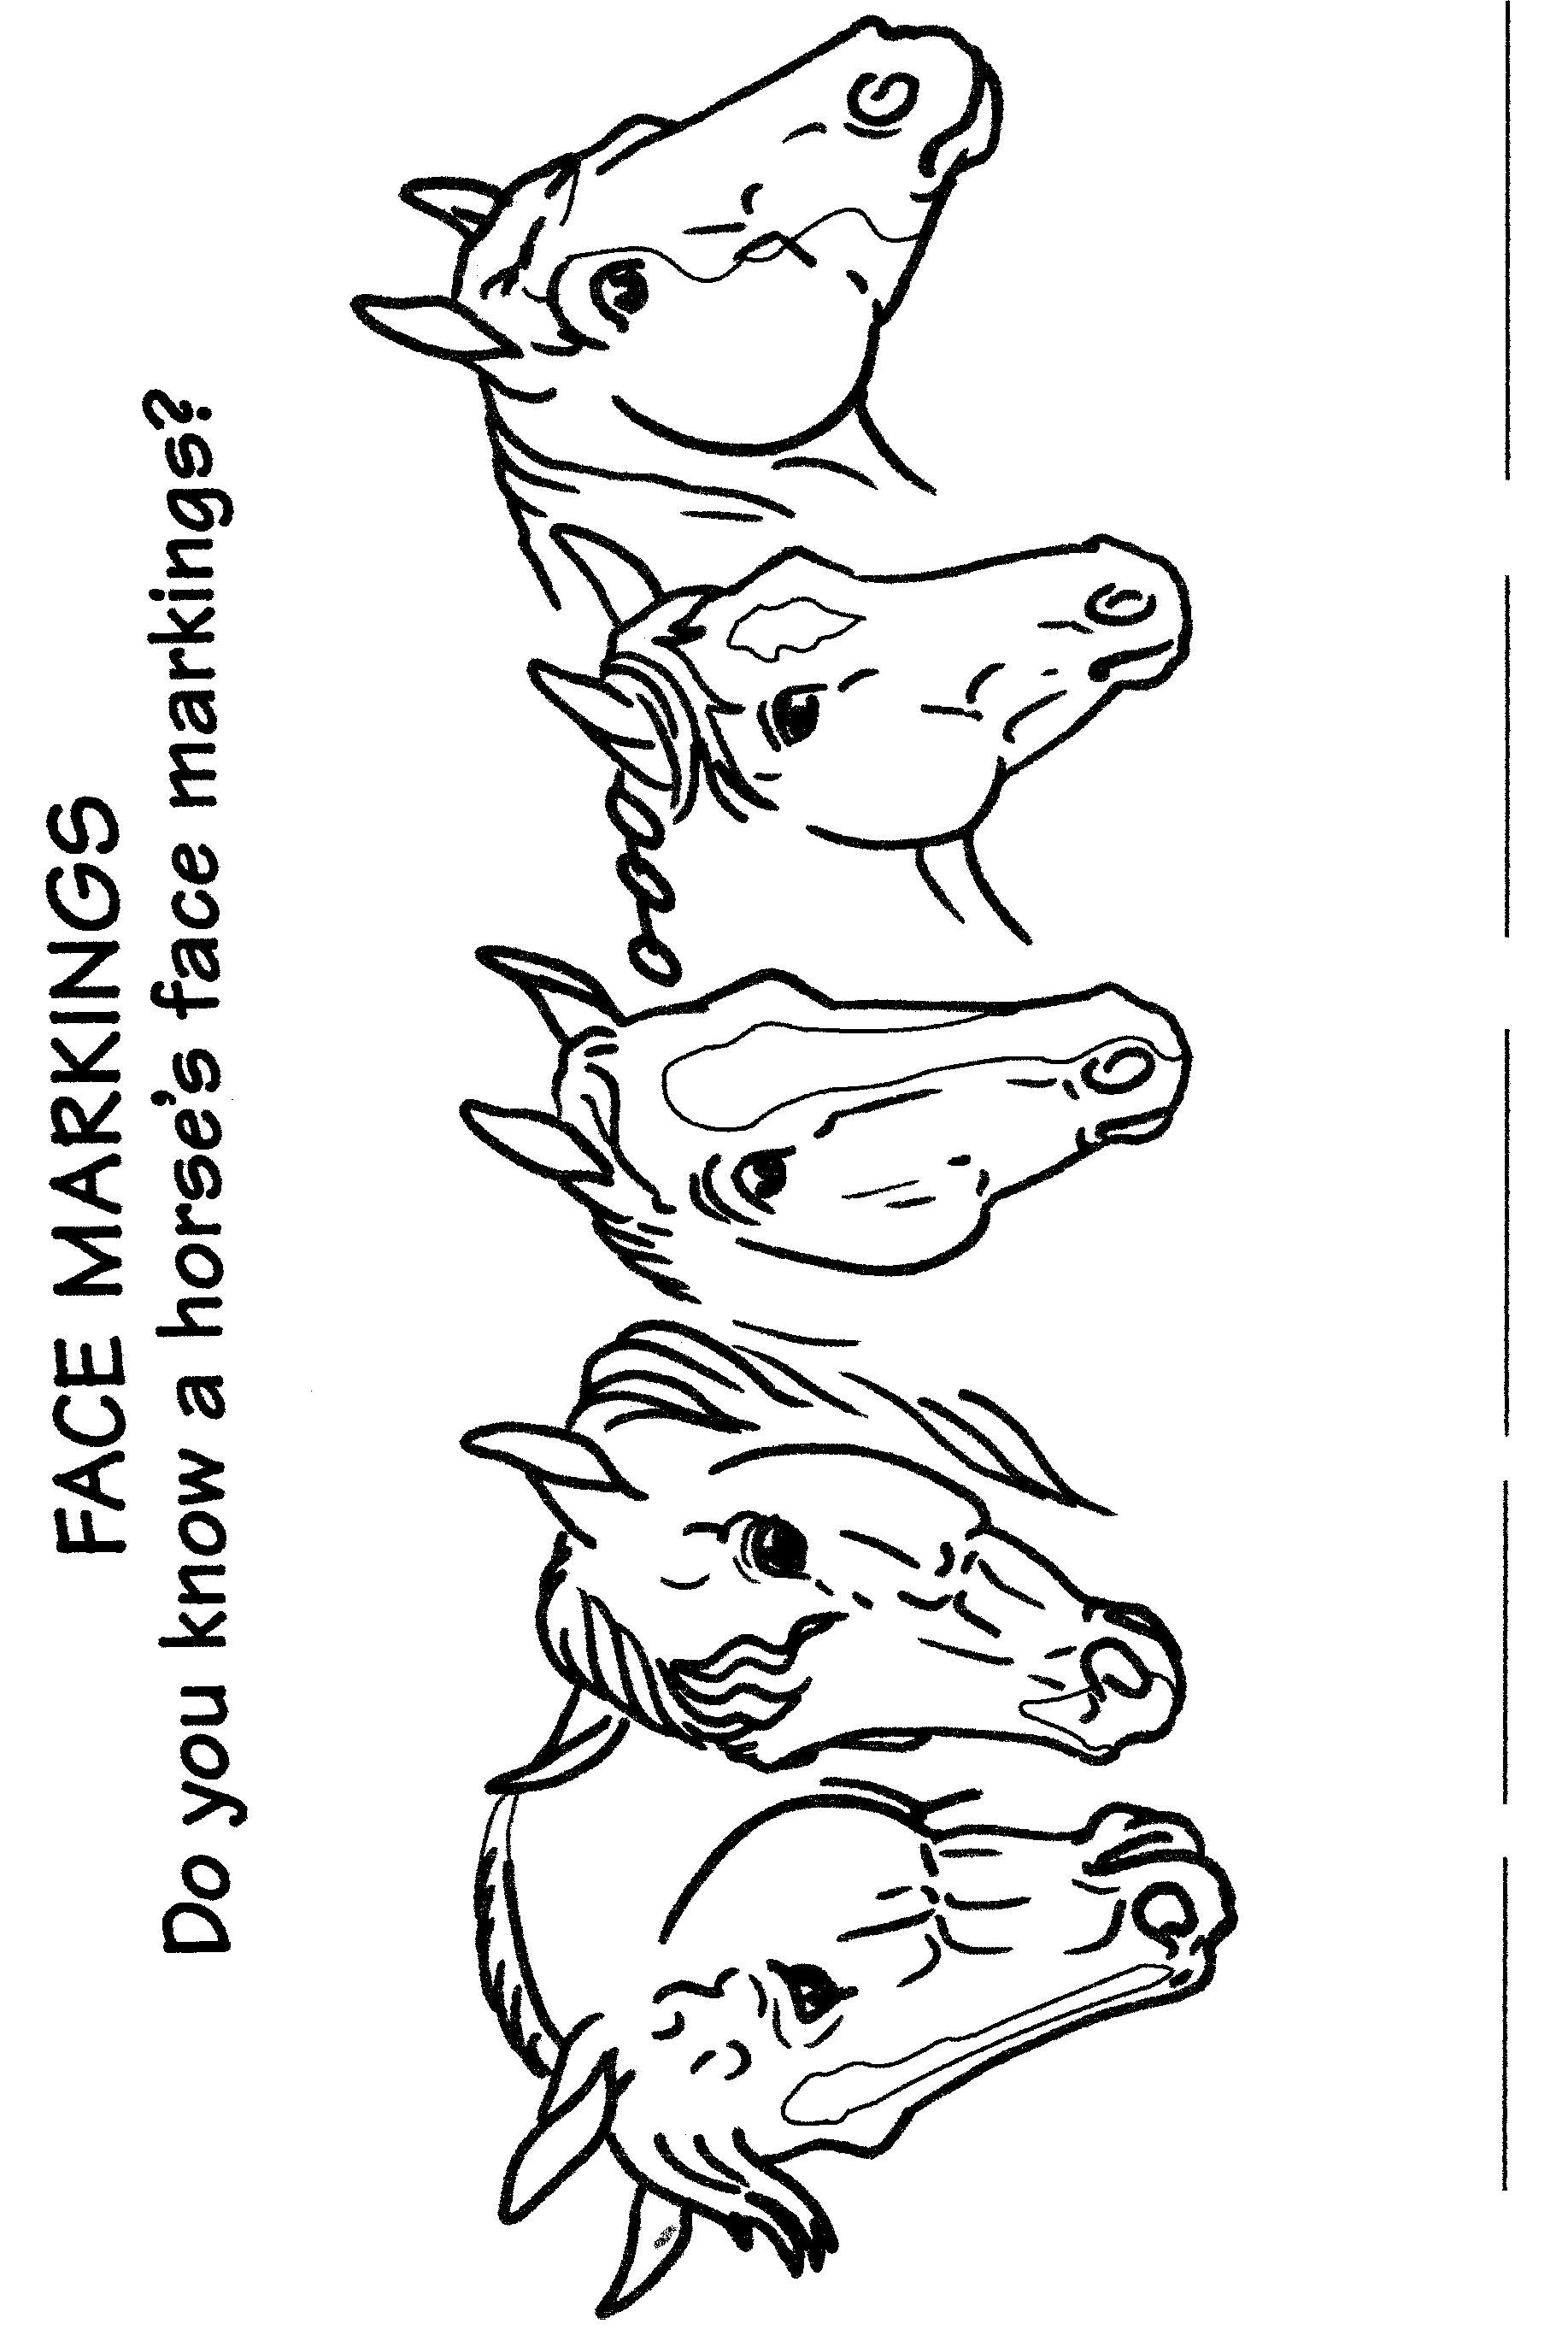 Face Markings Fill In The Blank Hand Out Horse Pinterest